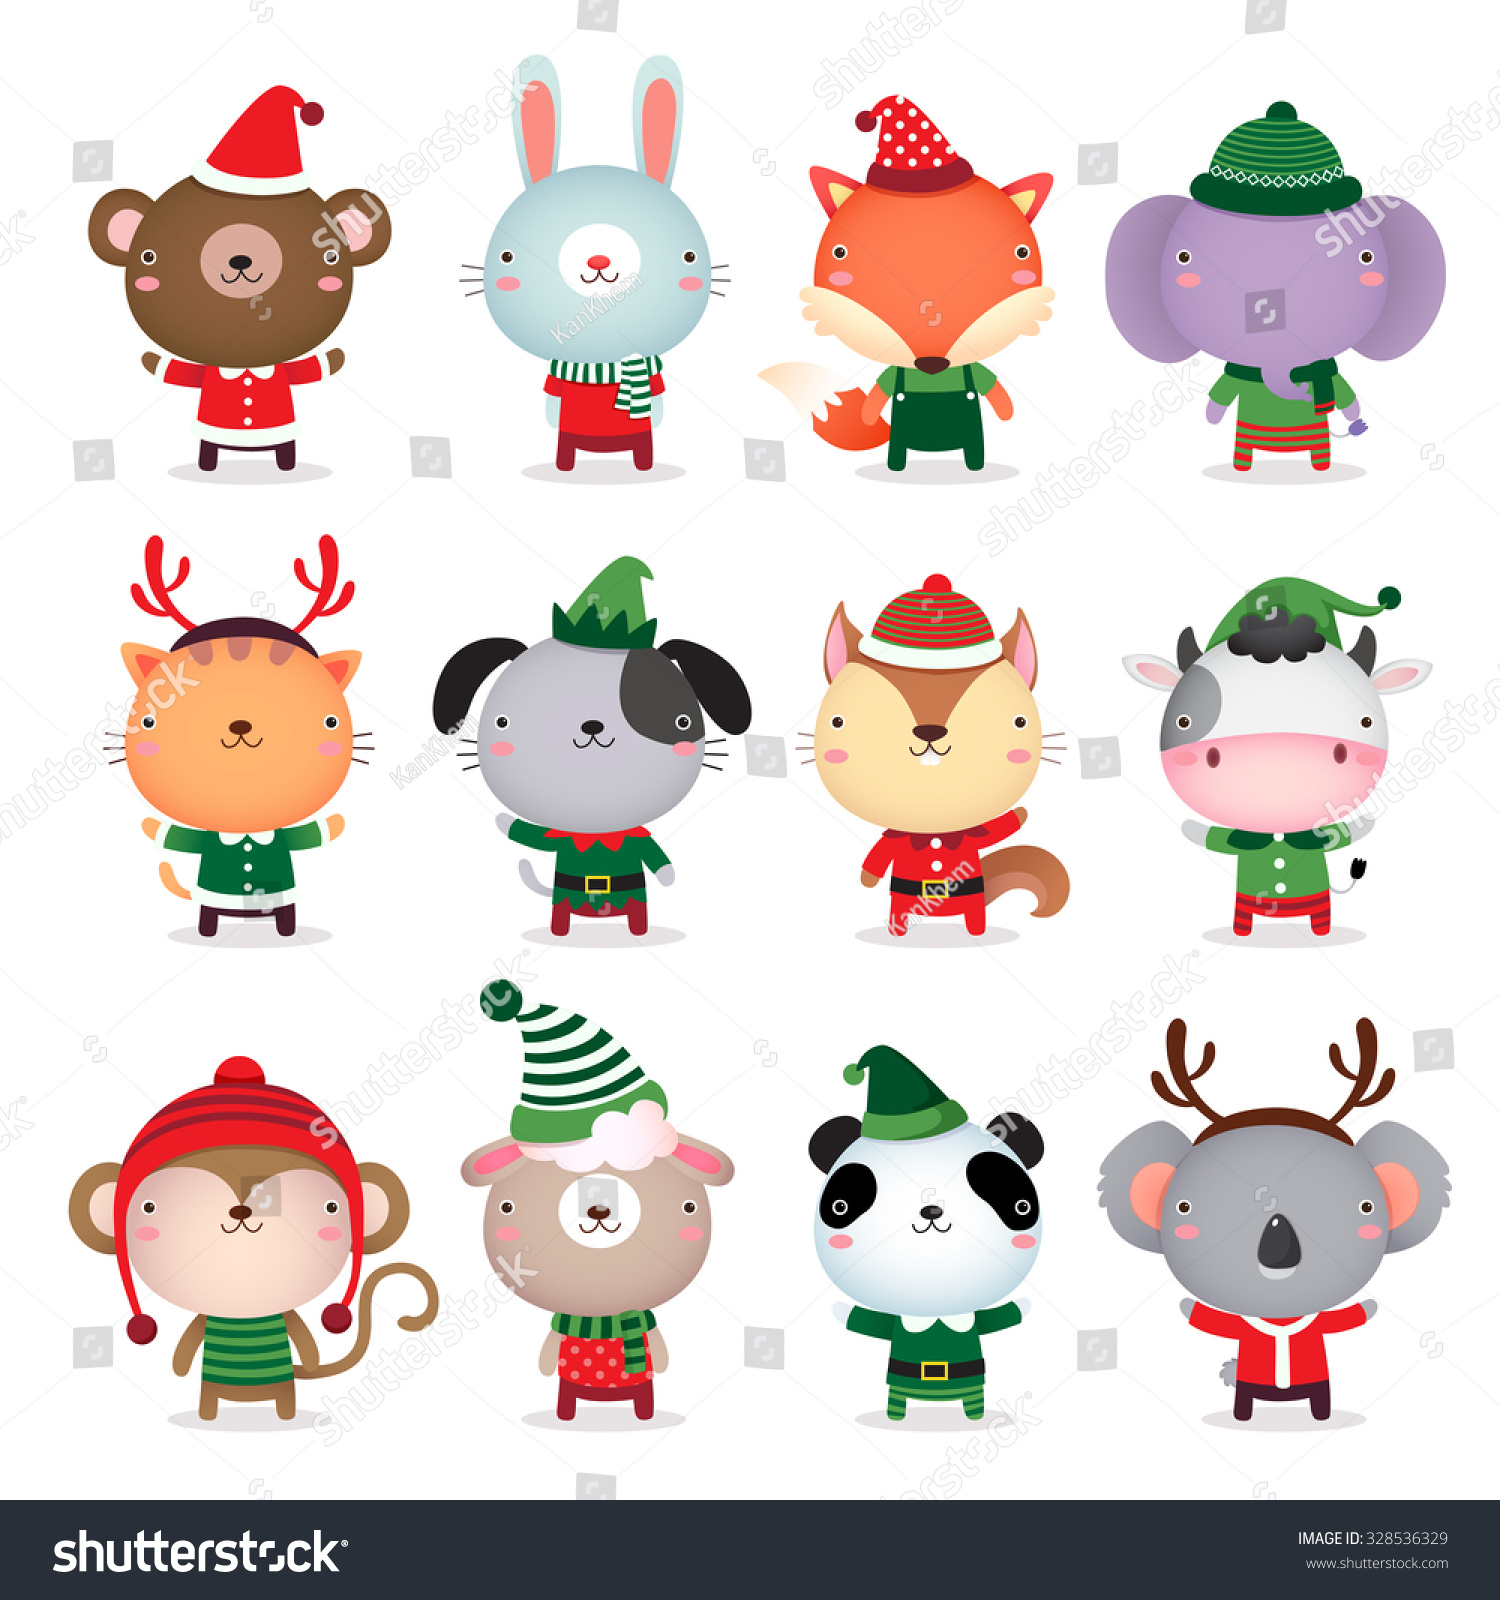 Cute Christmas Animals Clipart - photo#17